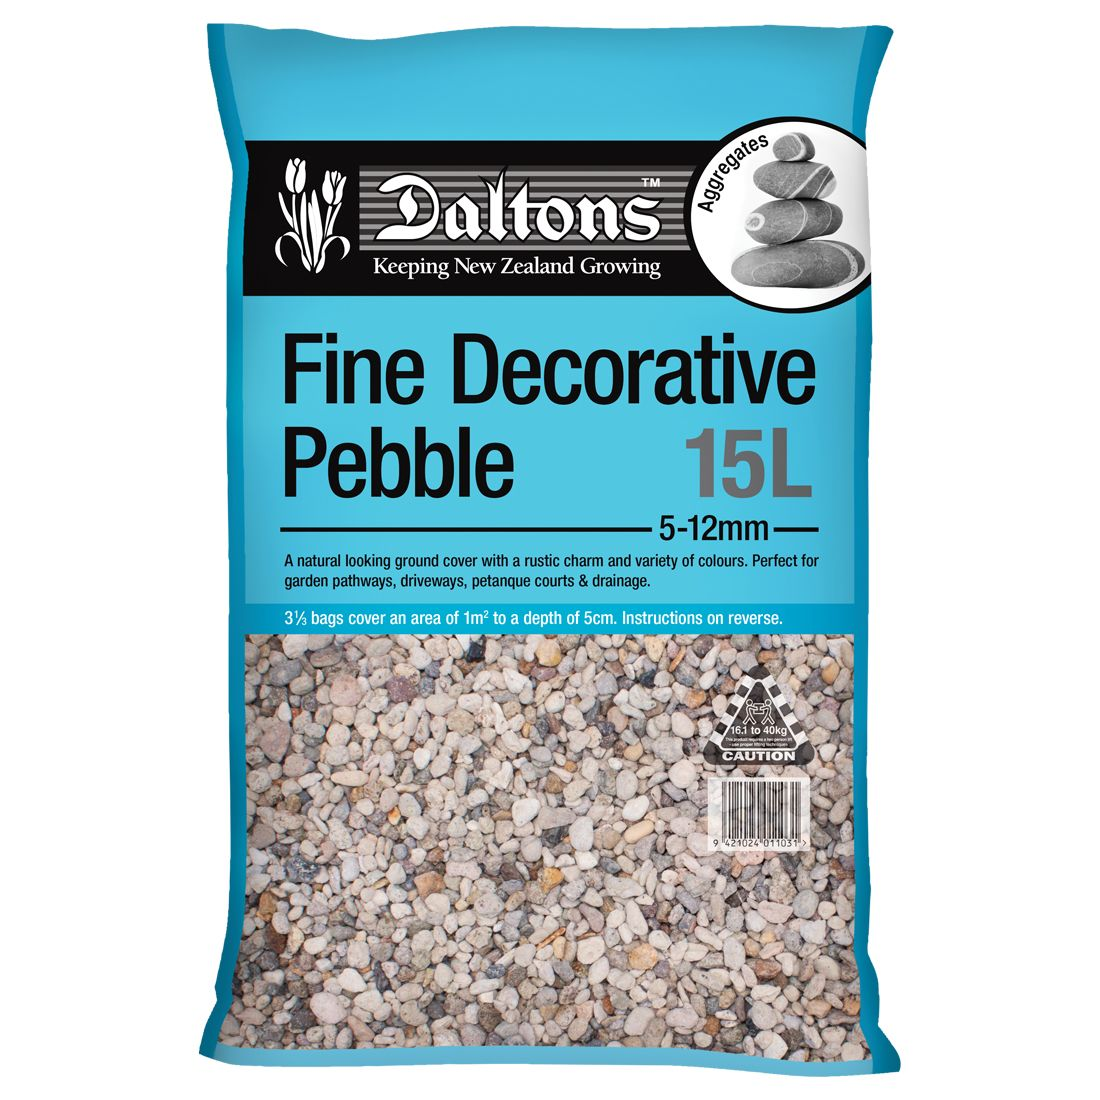 Fine Decorative Pebble 15L Bag